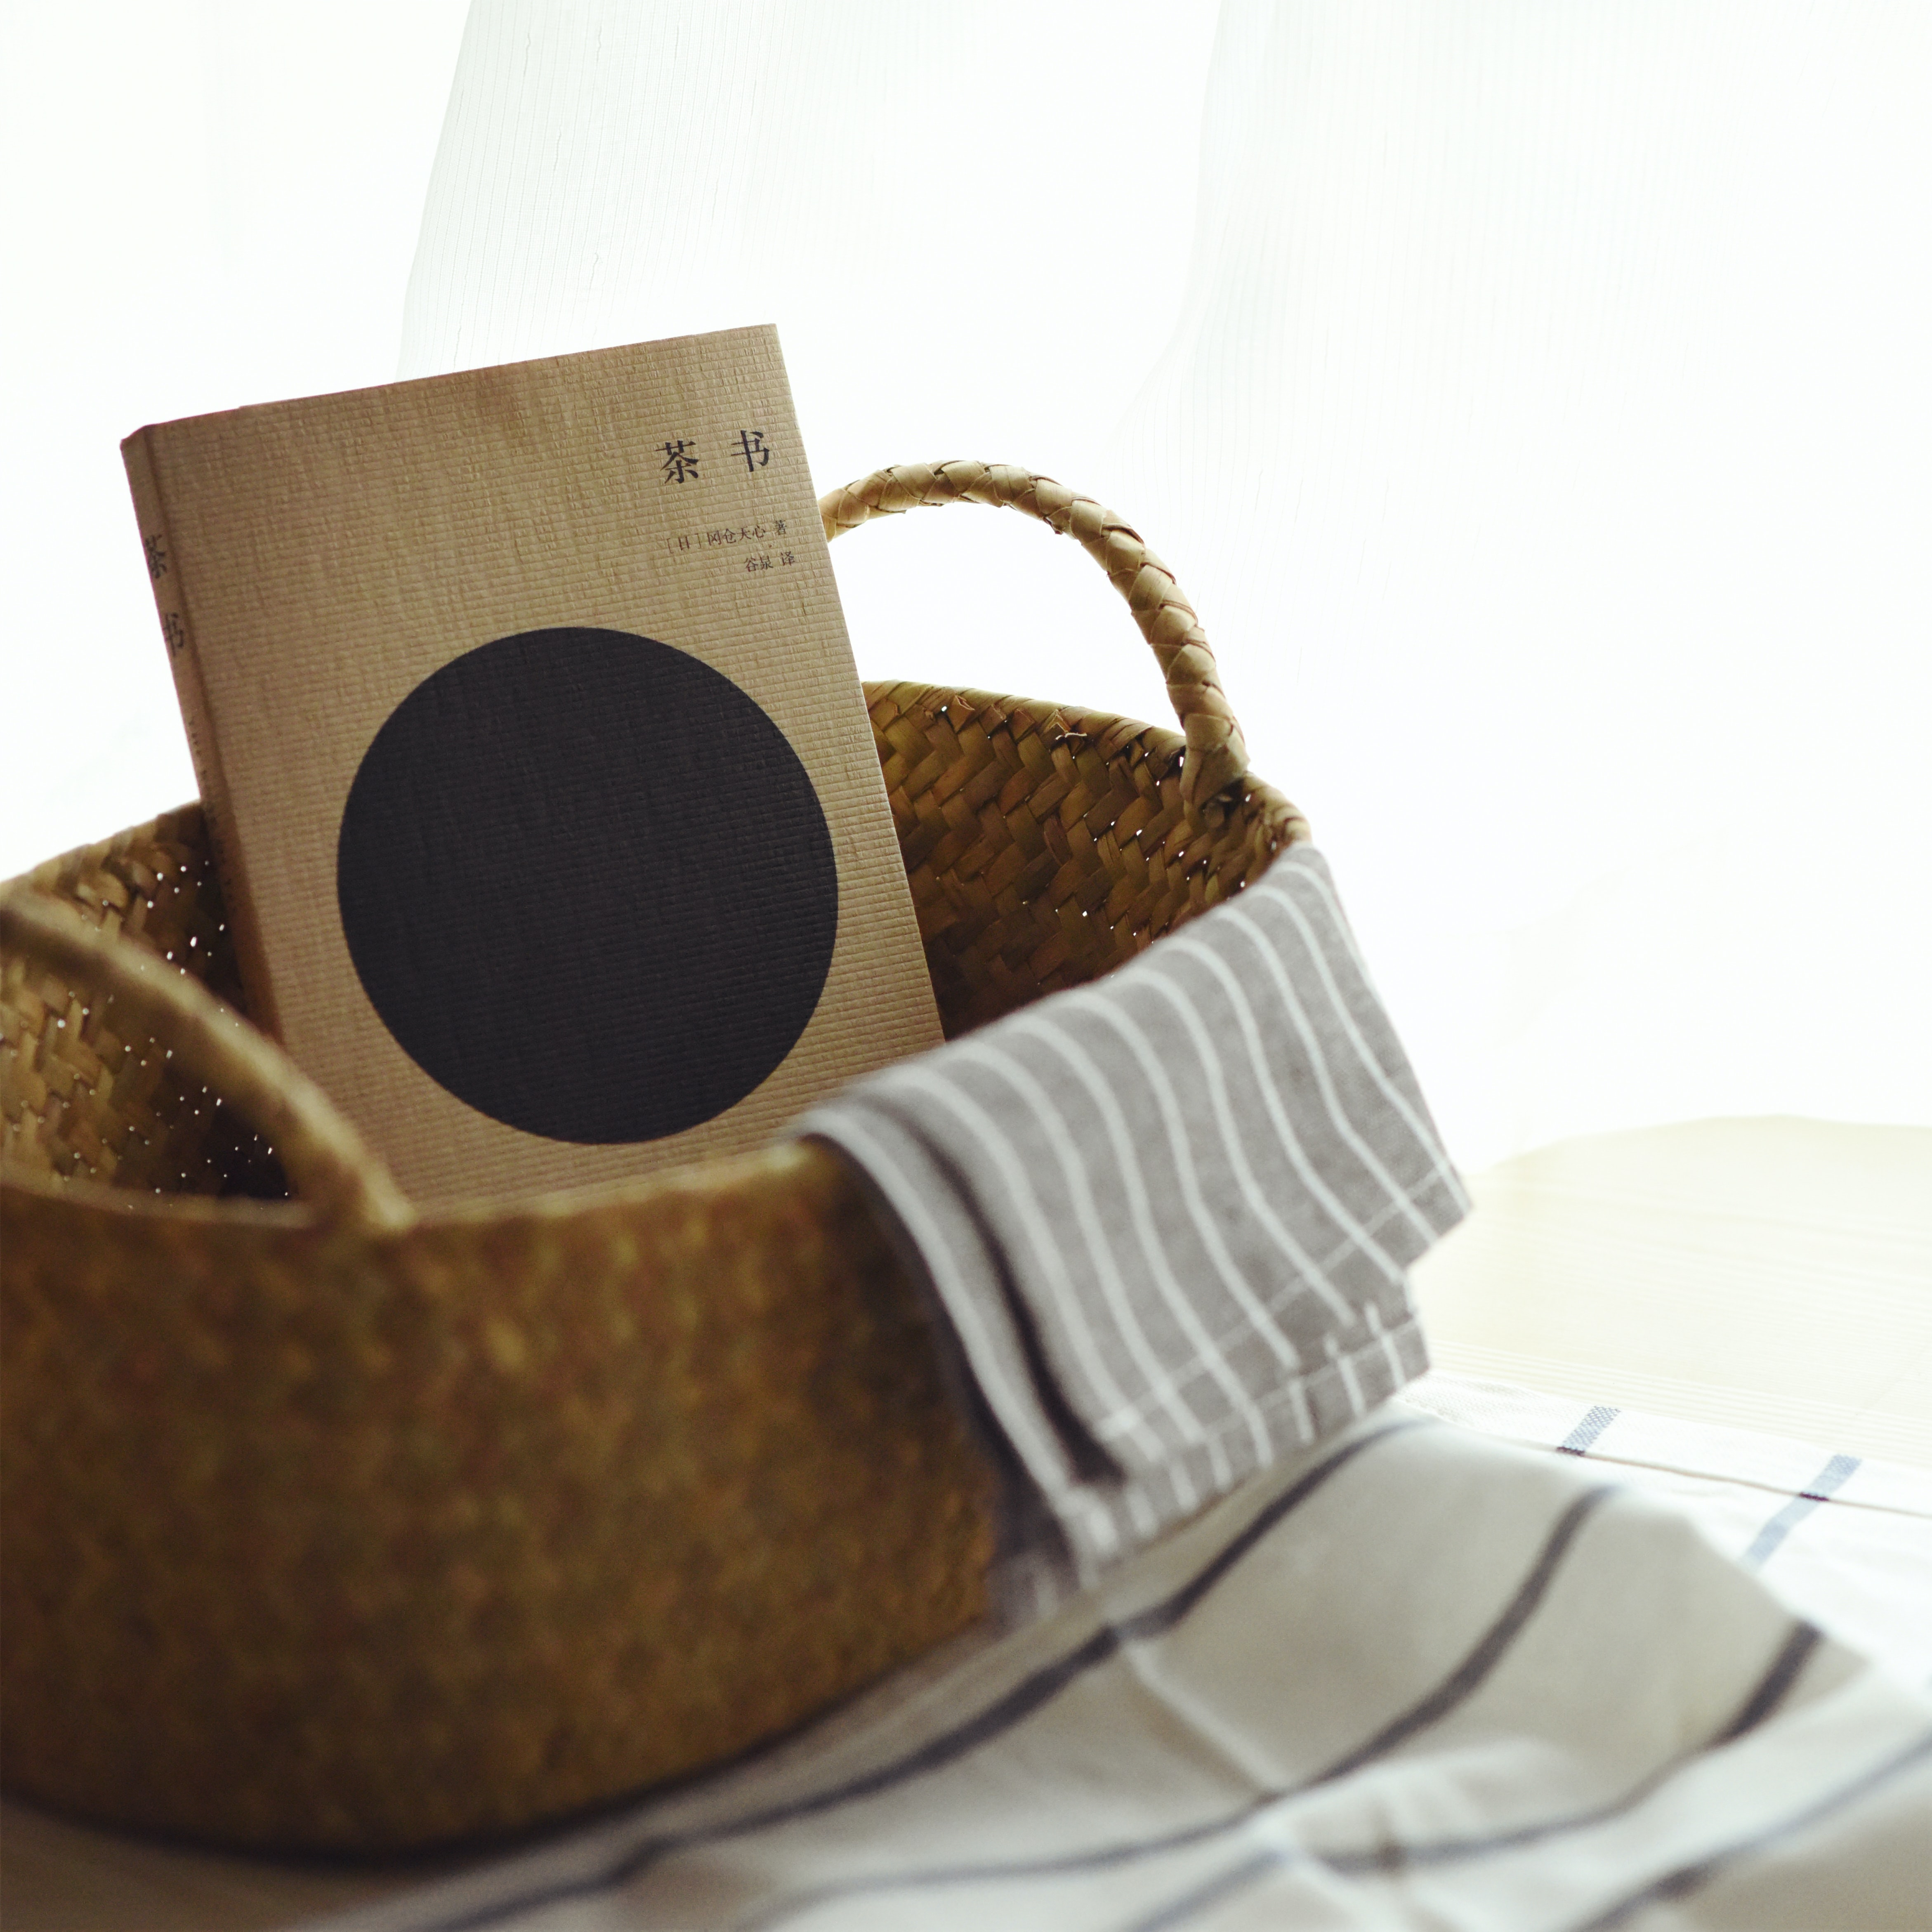 A notebook in a wicker basket in a bright room